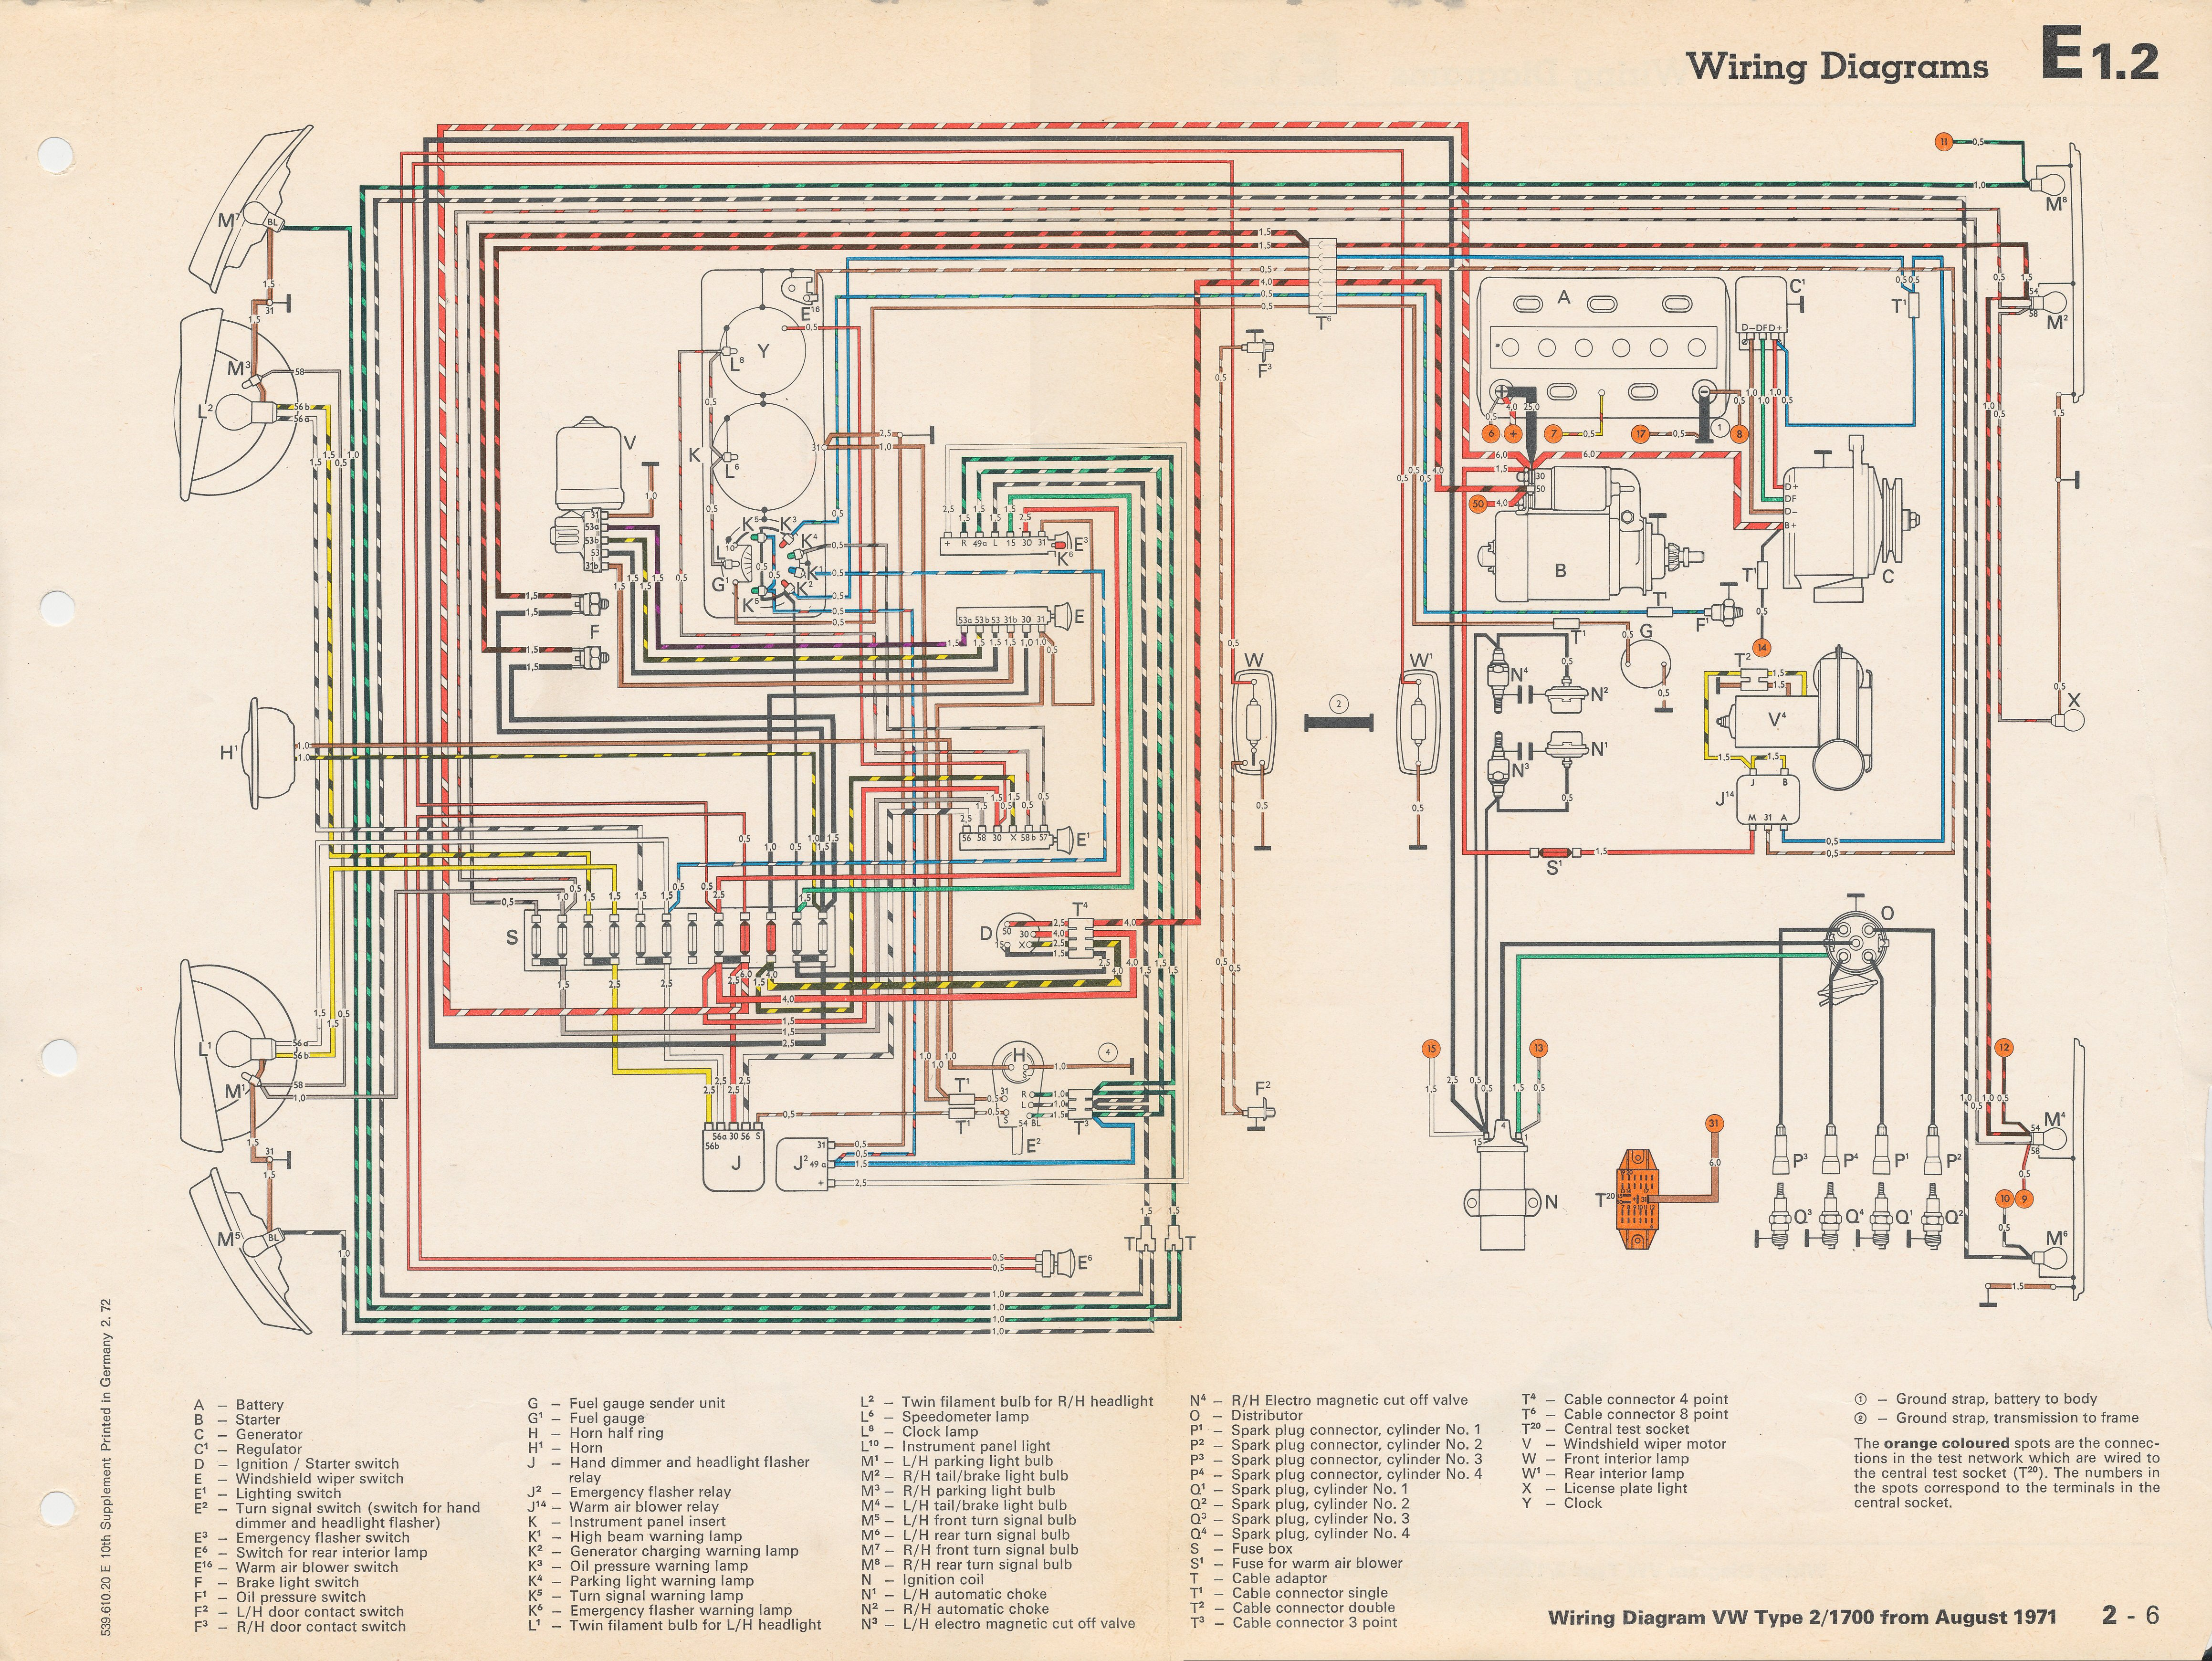 1971 vw bus wiring diagram electrics t25 starter into a 72 baywindow forum guitar pickup diagrams seymour duncan p rails 2 vol thesamba com bay window view topic 1972 battery ground http www archives info 8 71 1700 jpg